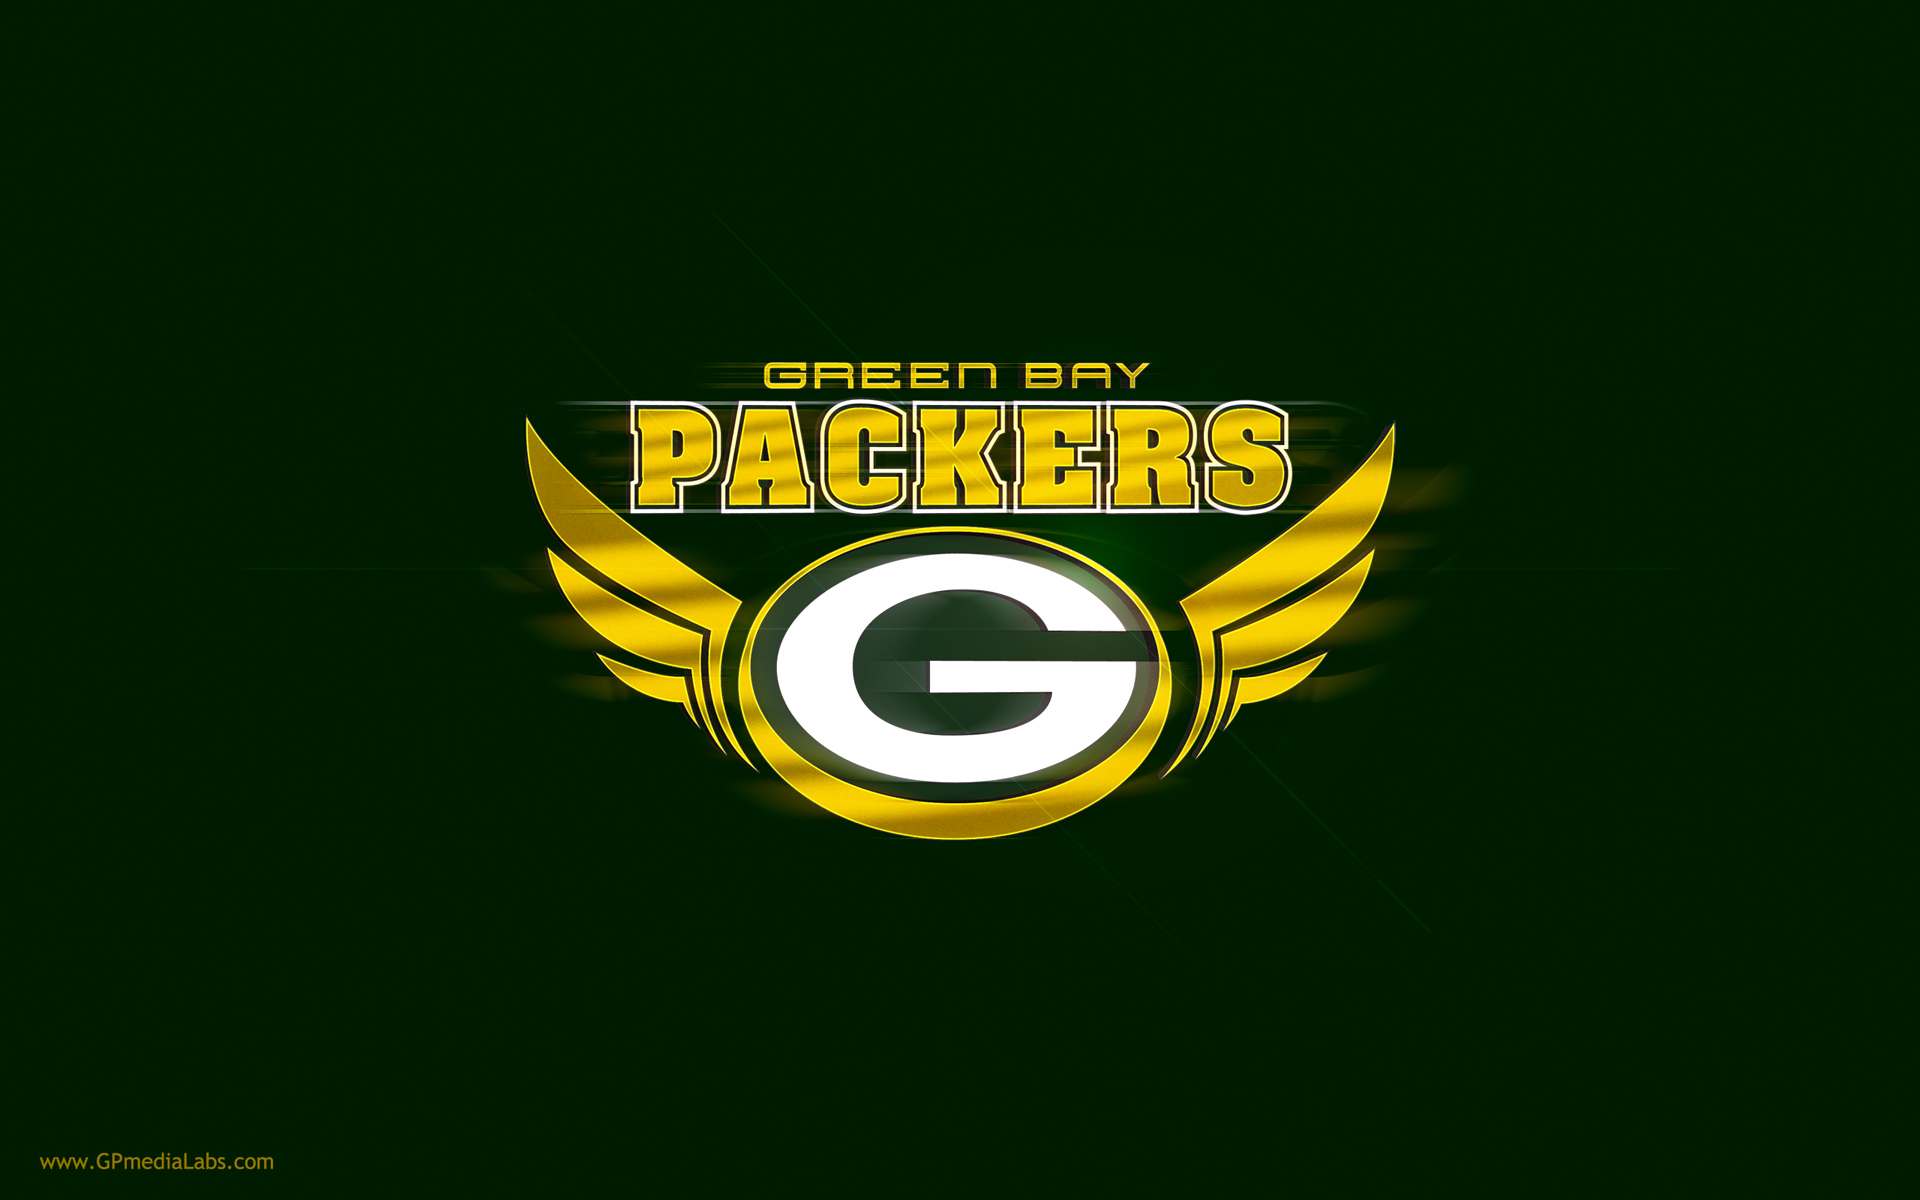 green bay packers desktop background wallpapers - packers logo